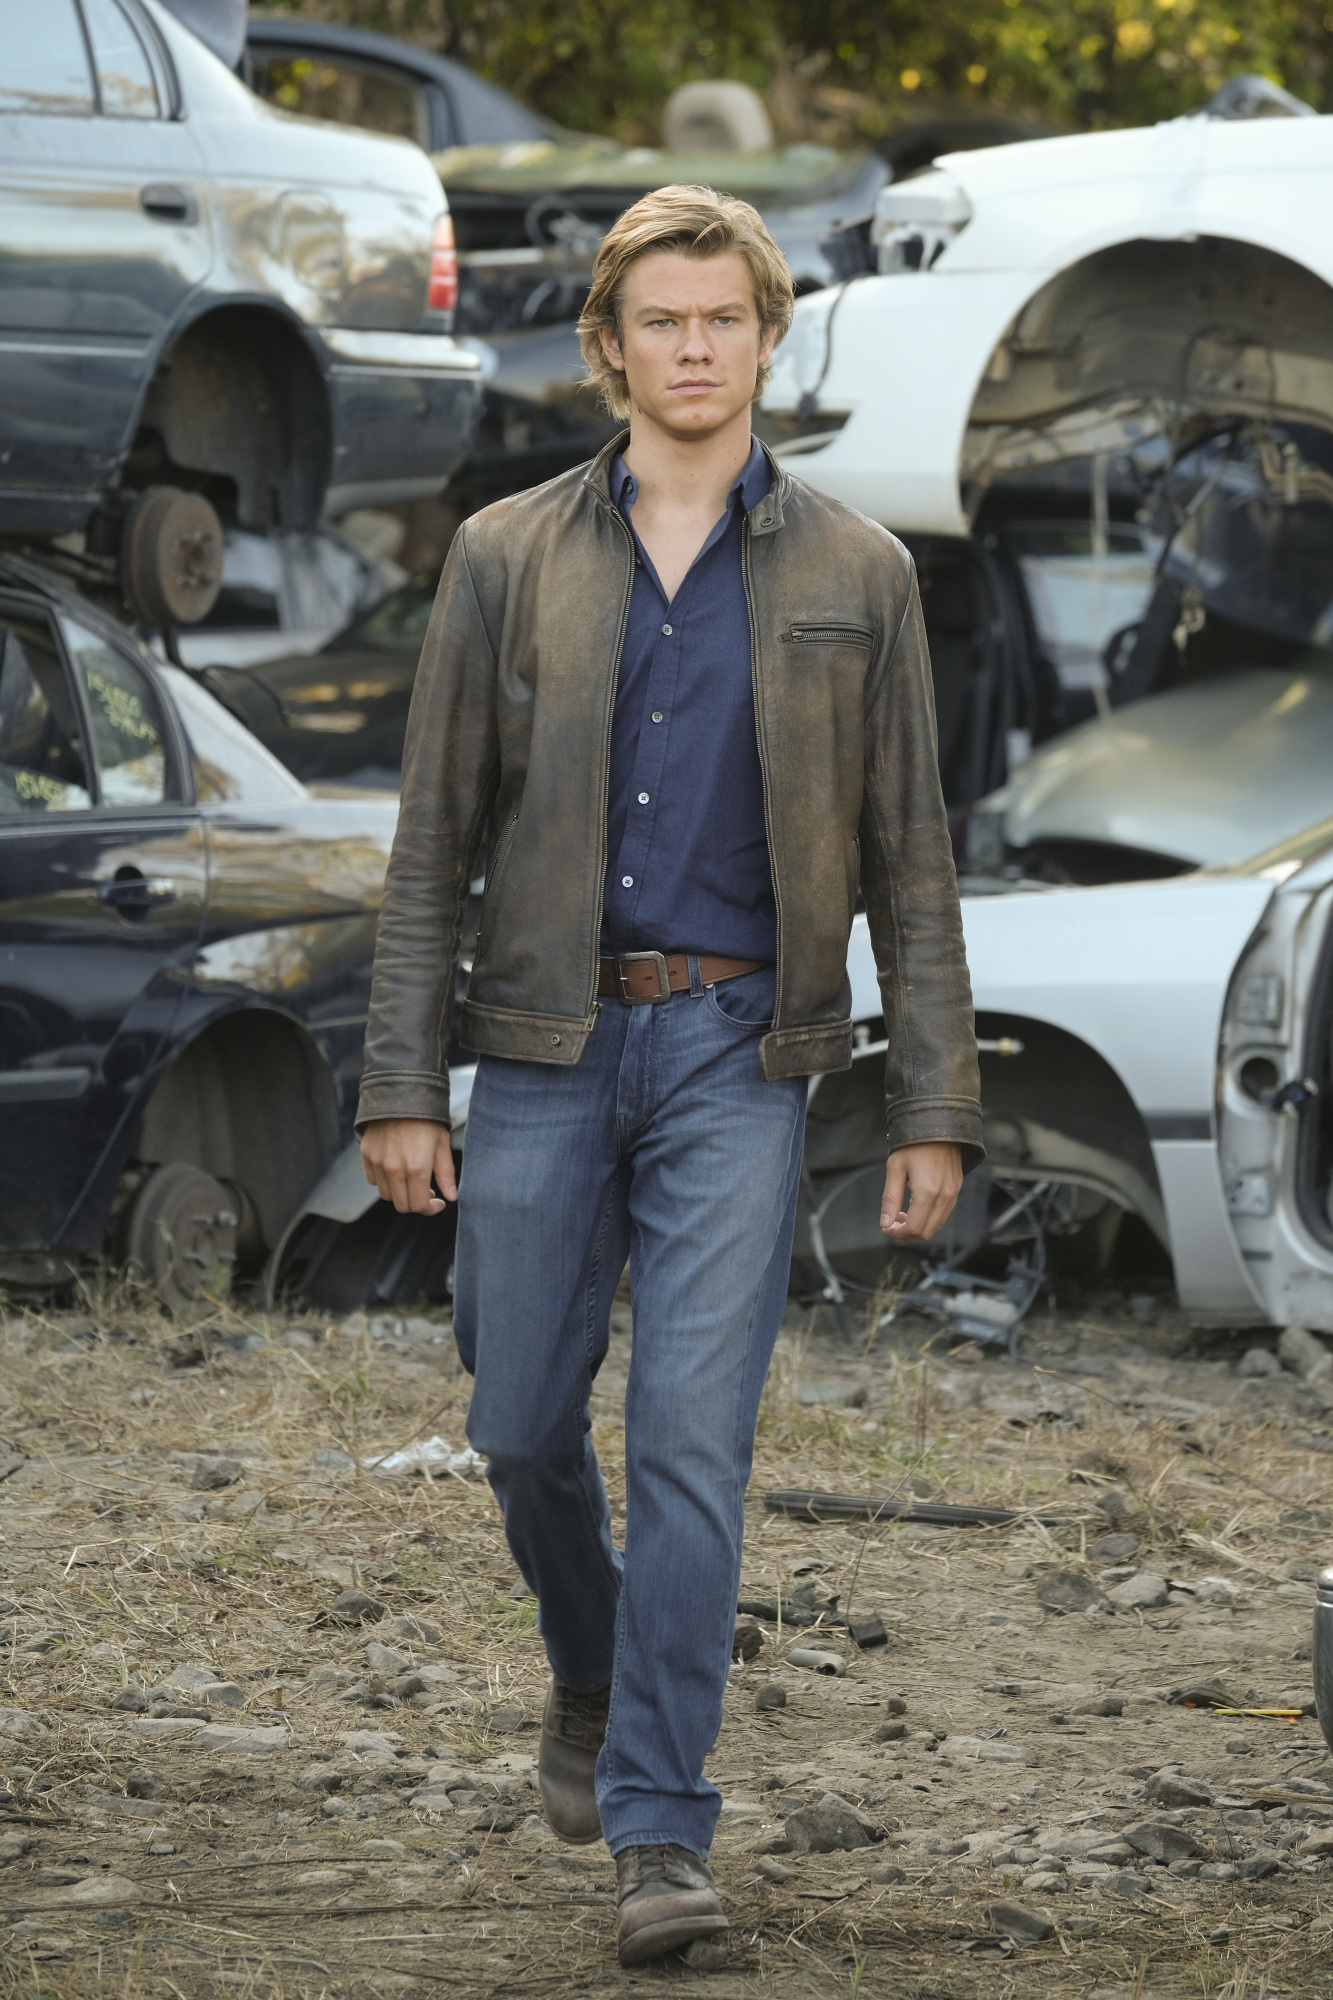 MacGyver notices something amiss in the junkyard.